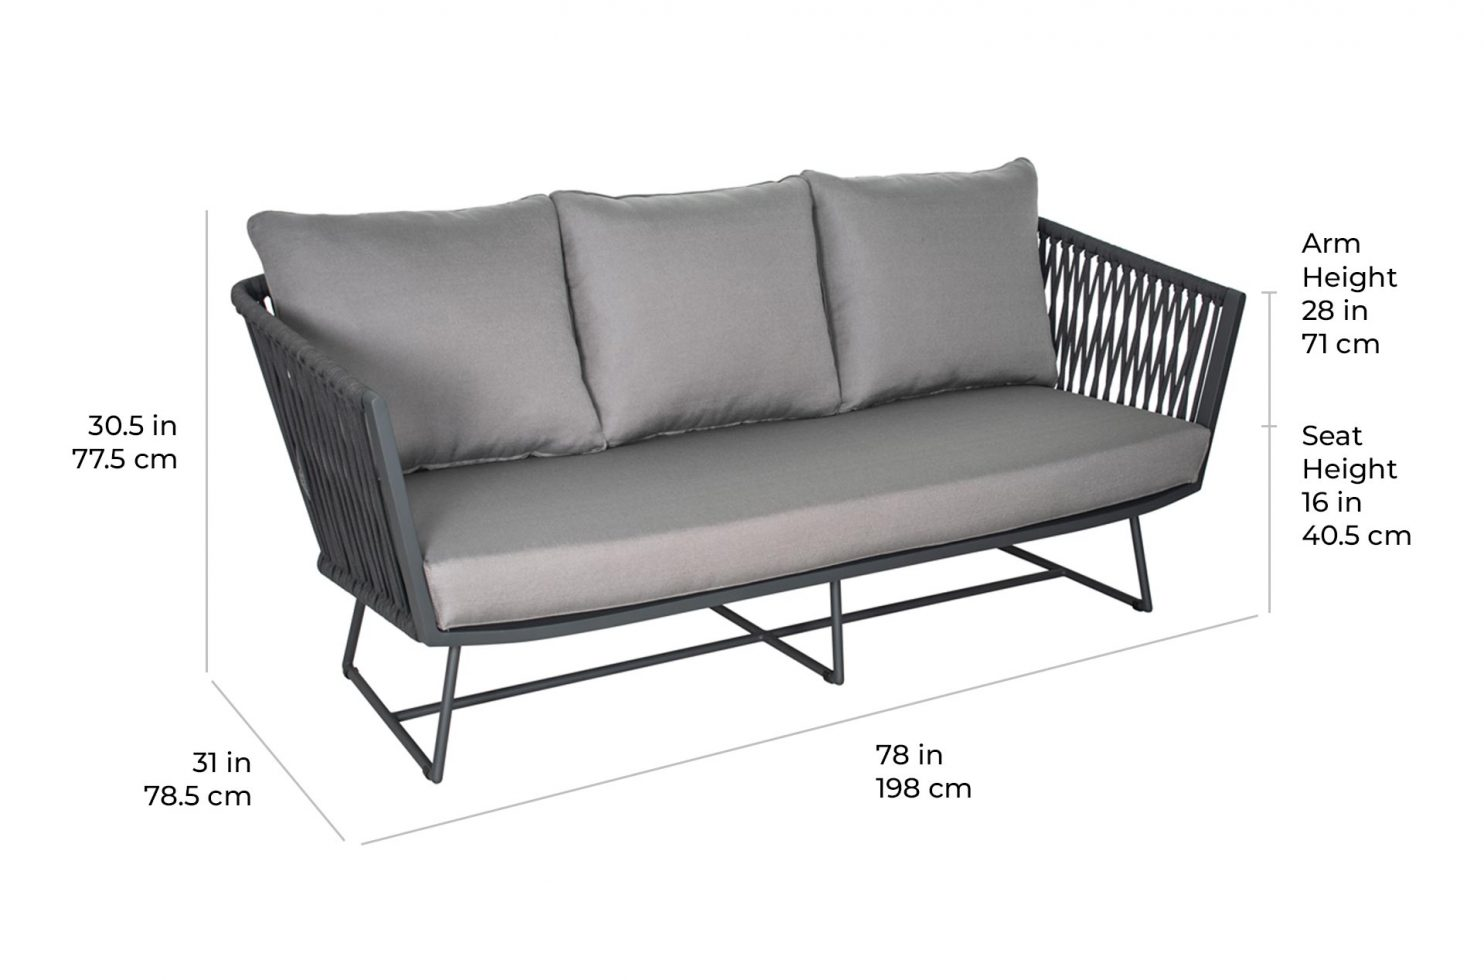 arch orion sofa 620FT081P2 scale dims